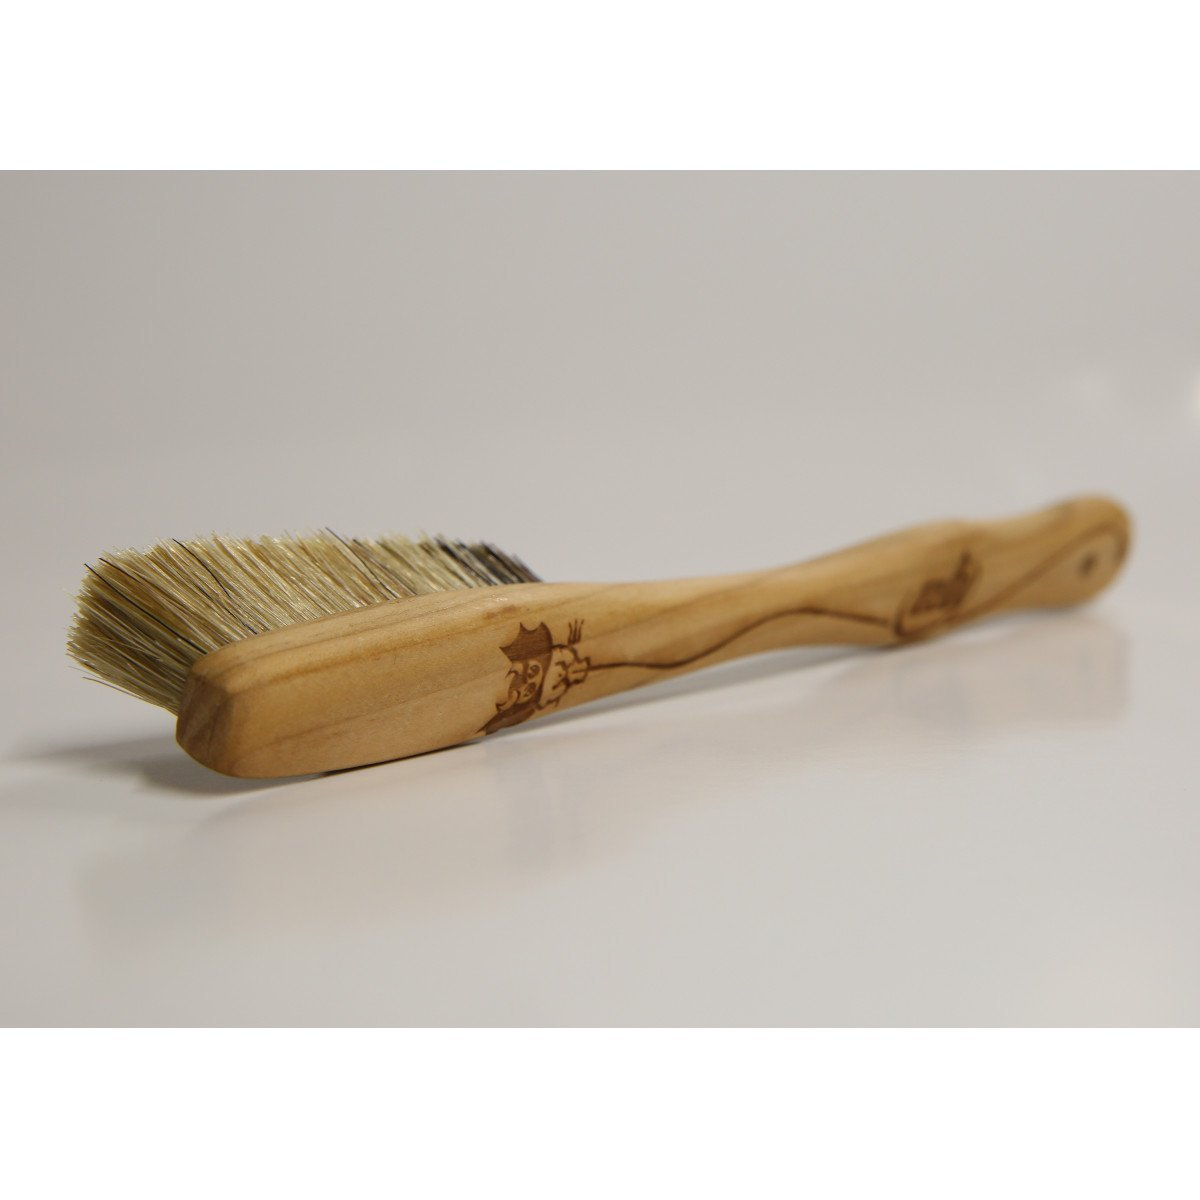 EB Cherry Wood Brush, shown laid on its side bristles facing away